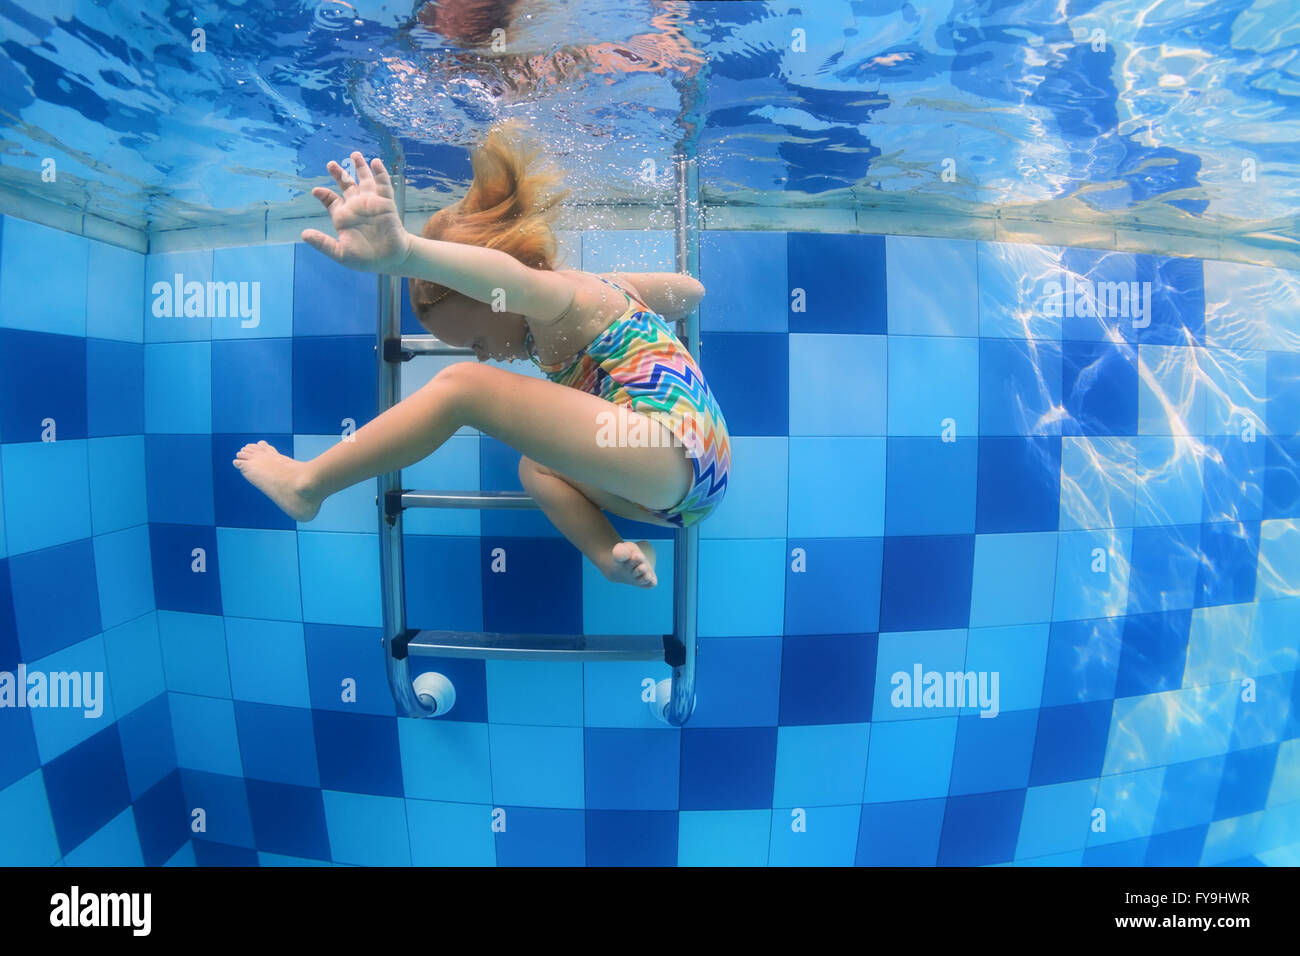 Funny photo of baby girl swimming and diving in pool with fun - jumping deep down underwater with splashes and foam. Stock Photo